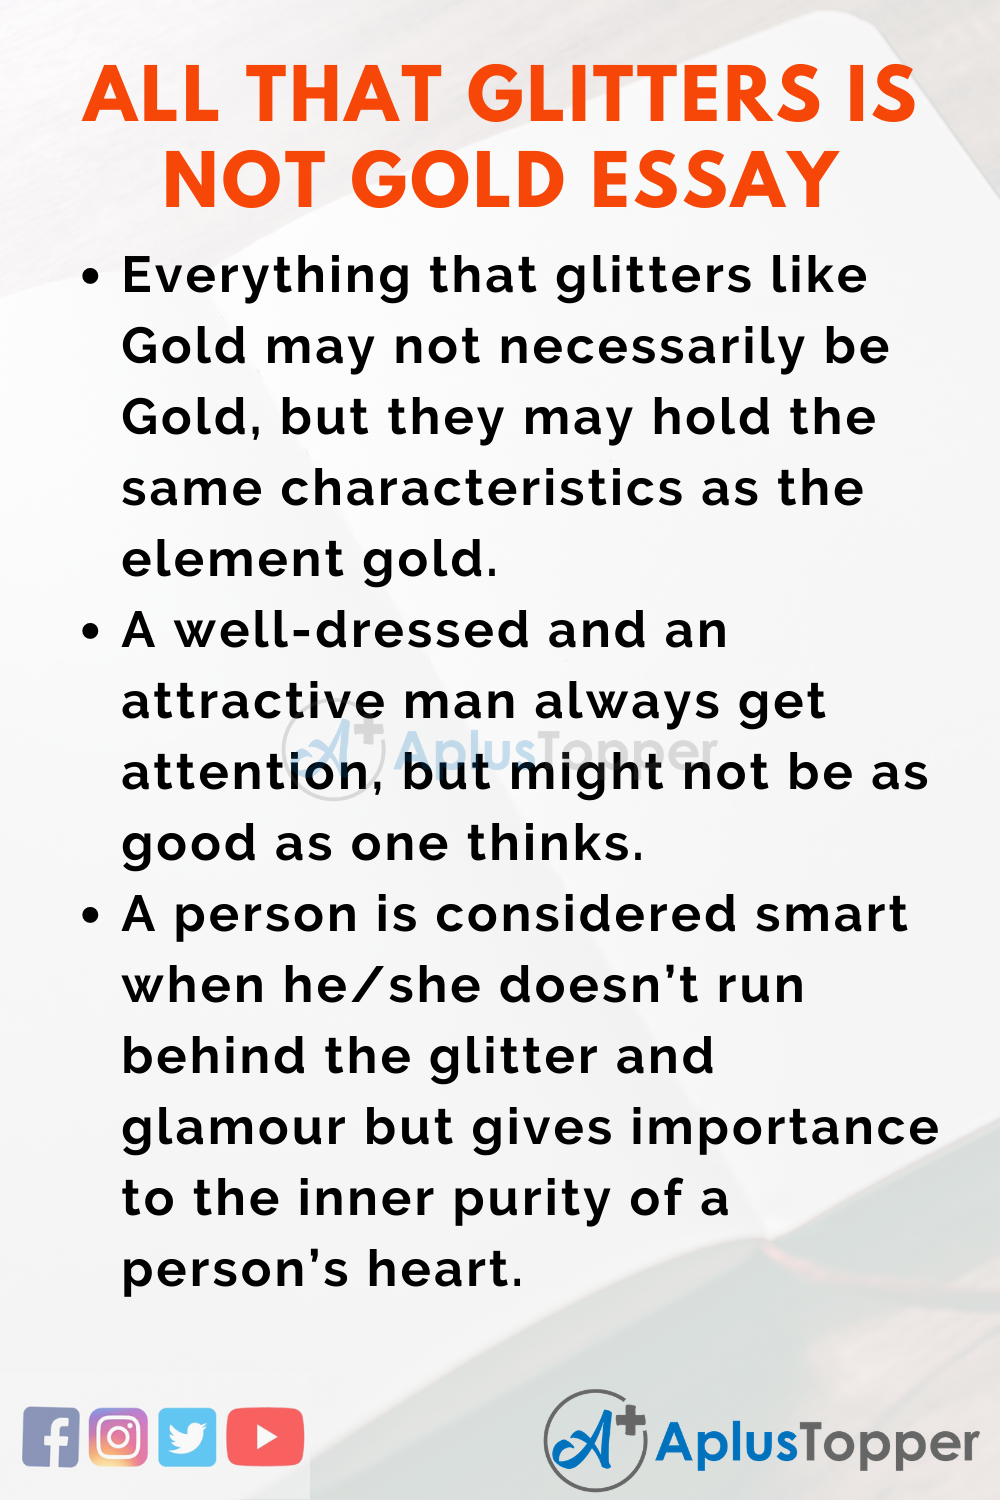 Short Essay on All that Glitters is not Gold Essay 200 Words